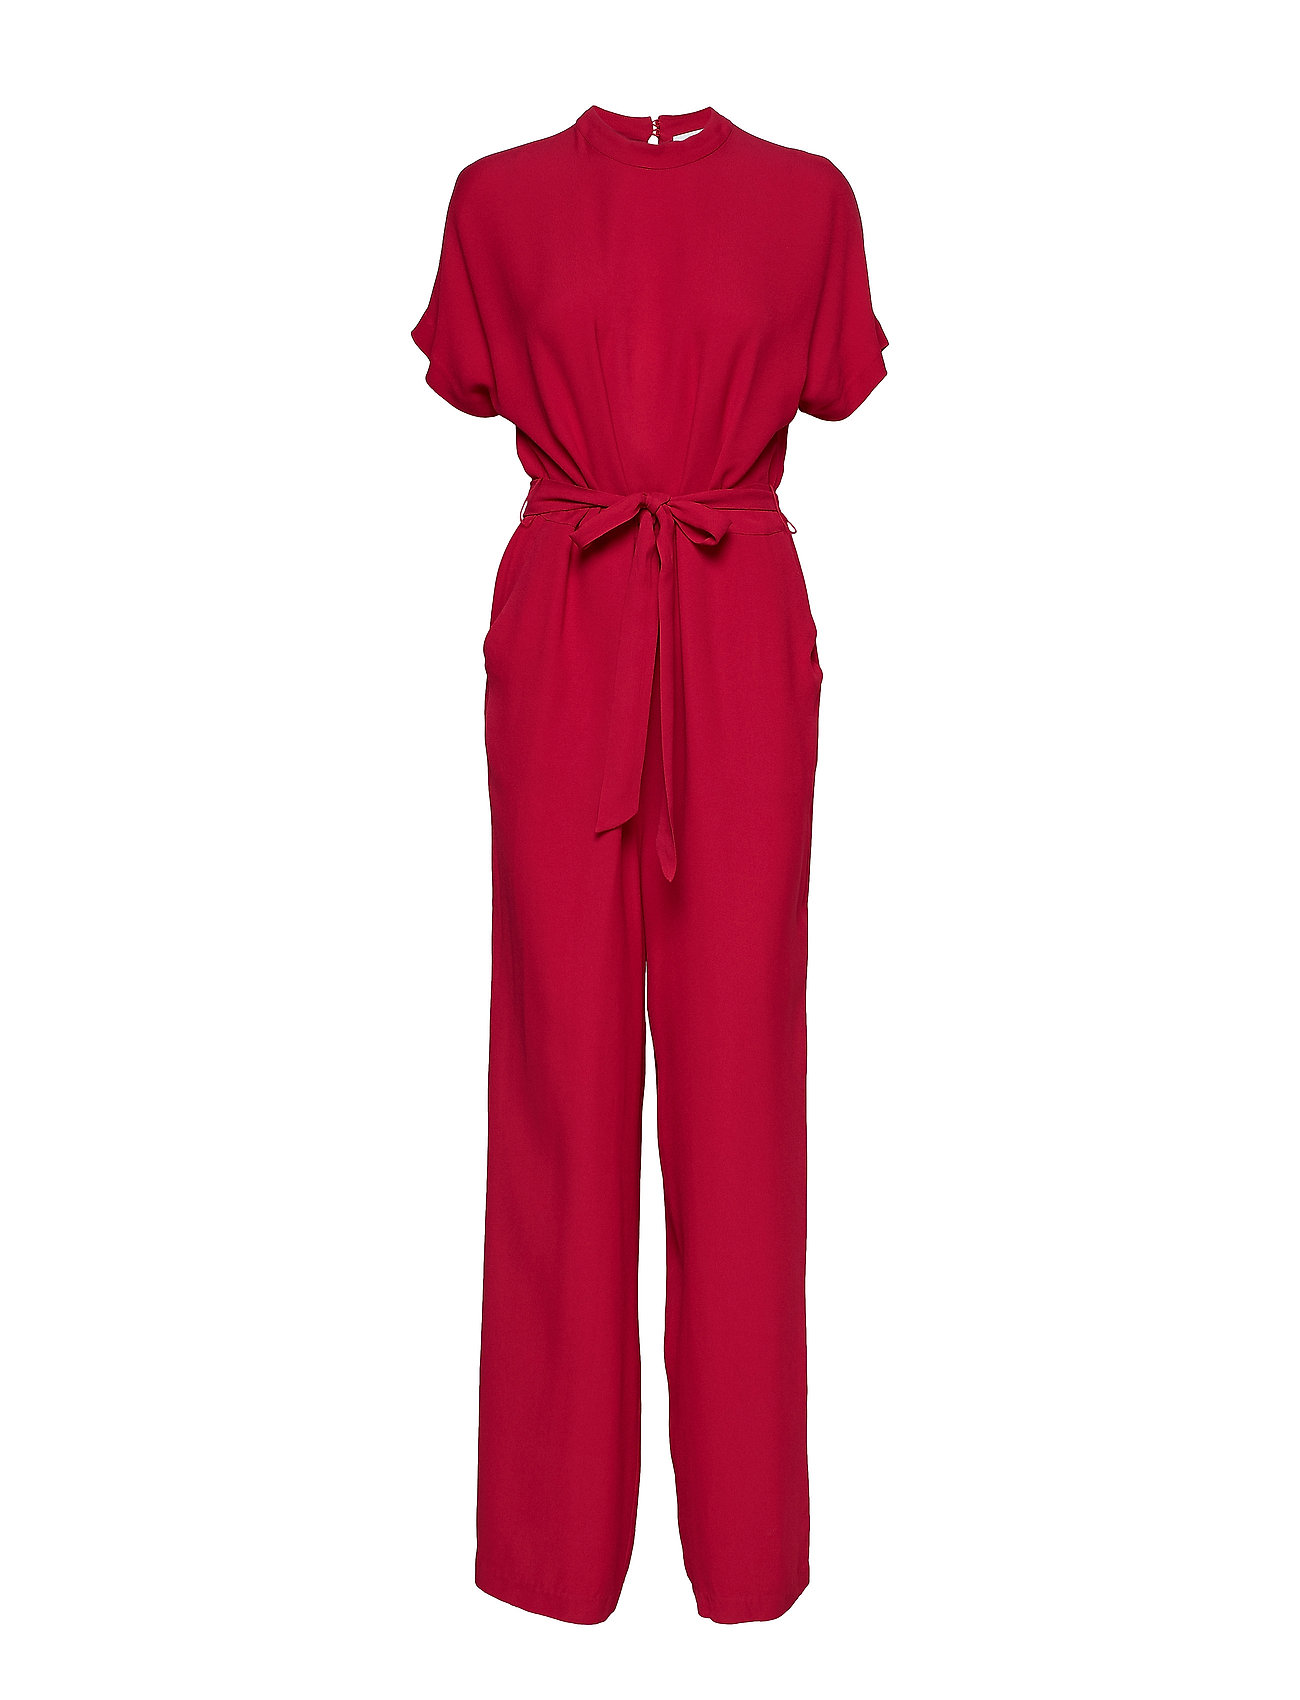 Samsøe & Samsøe Kimberly jumpsuit 8325 - PERSIAN RED